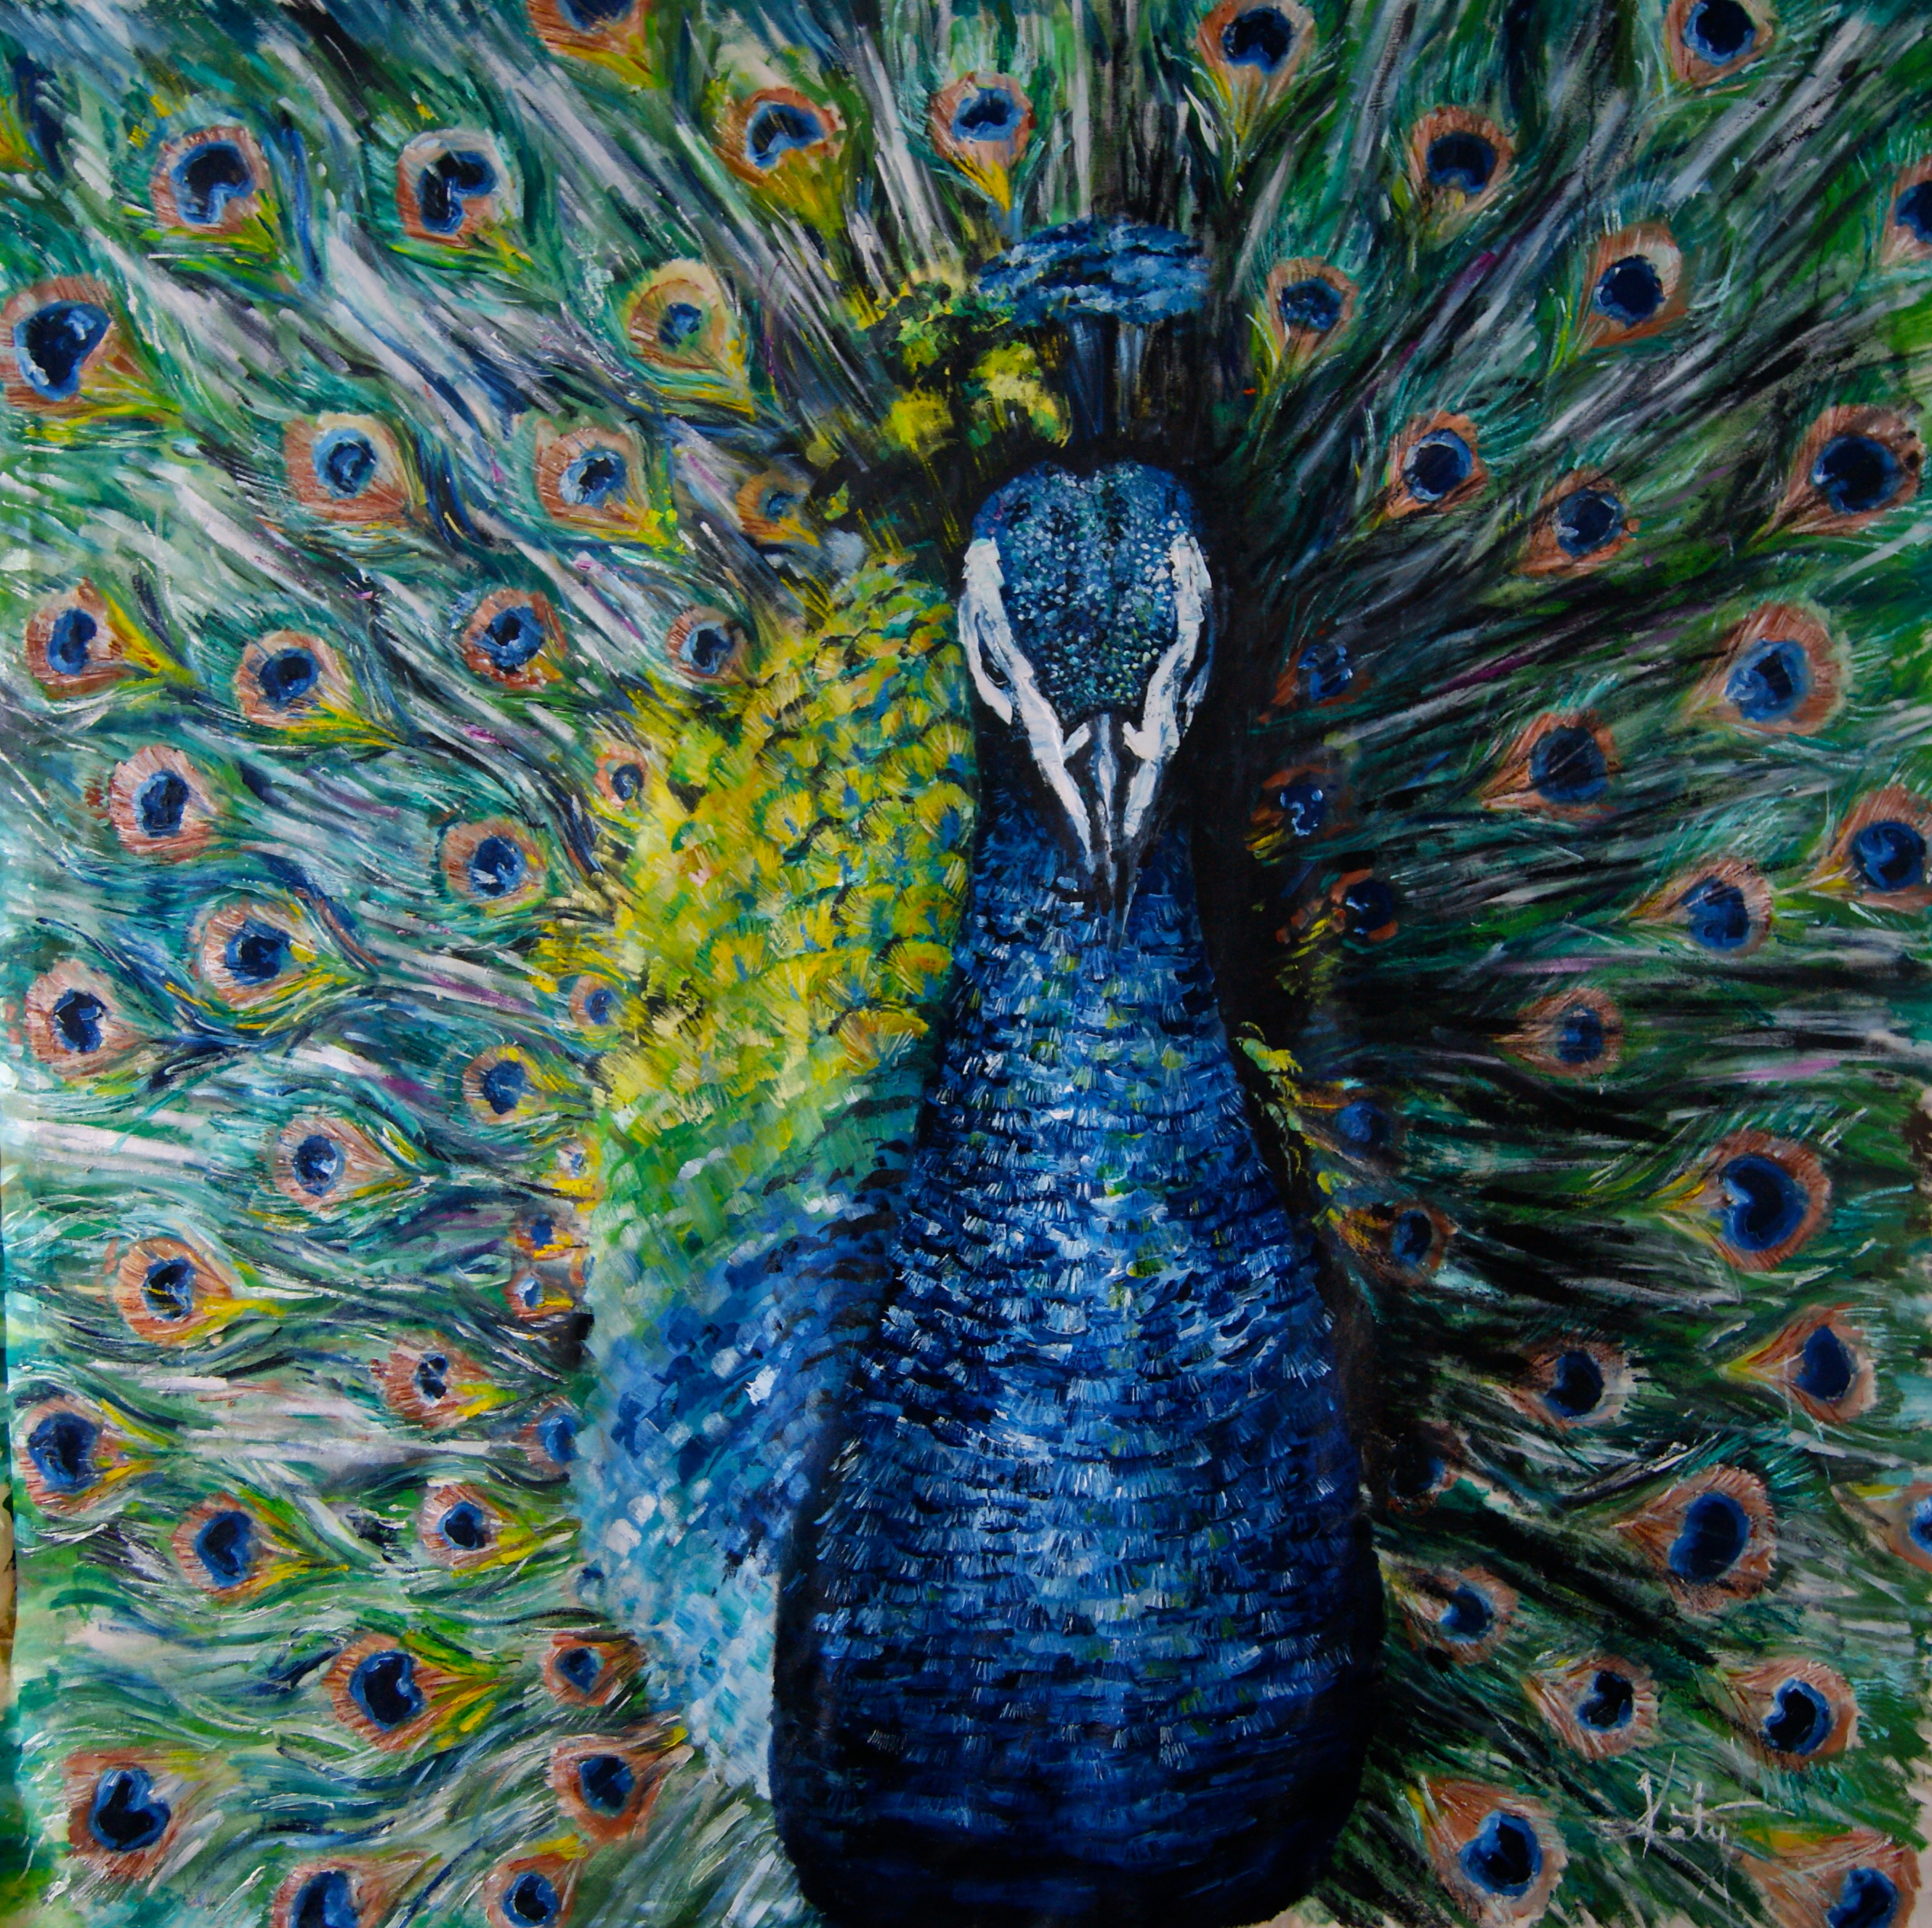 HUGE Peacock Oil Painting Finally FINISHED